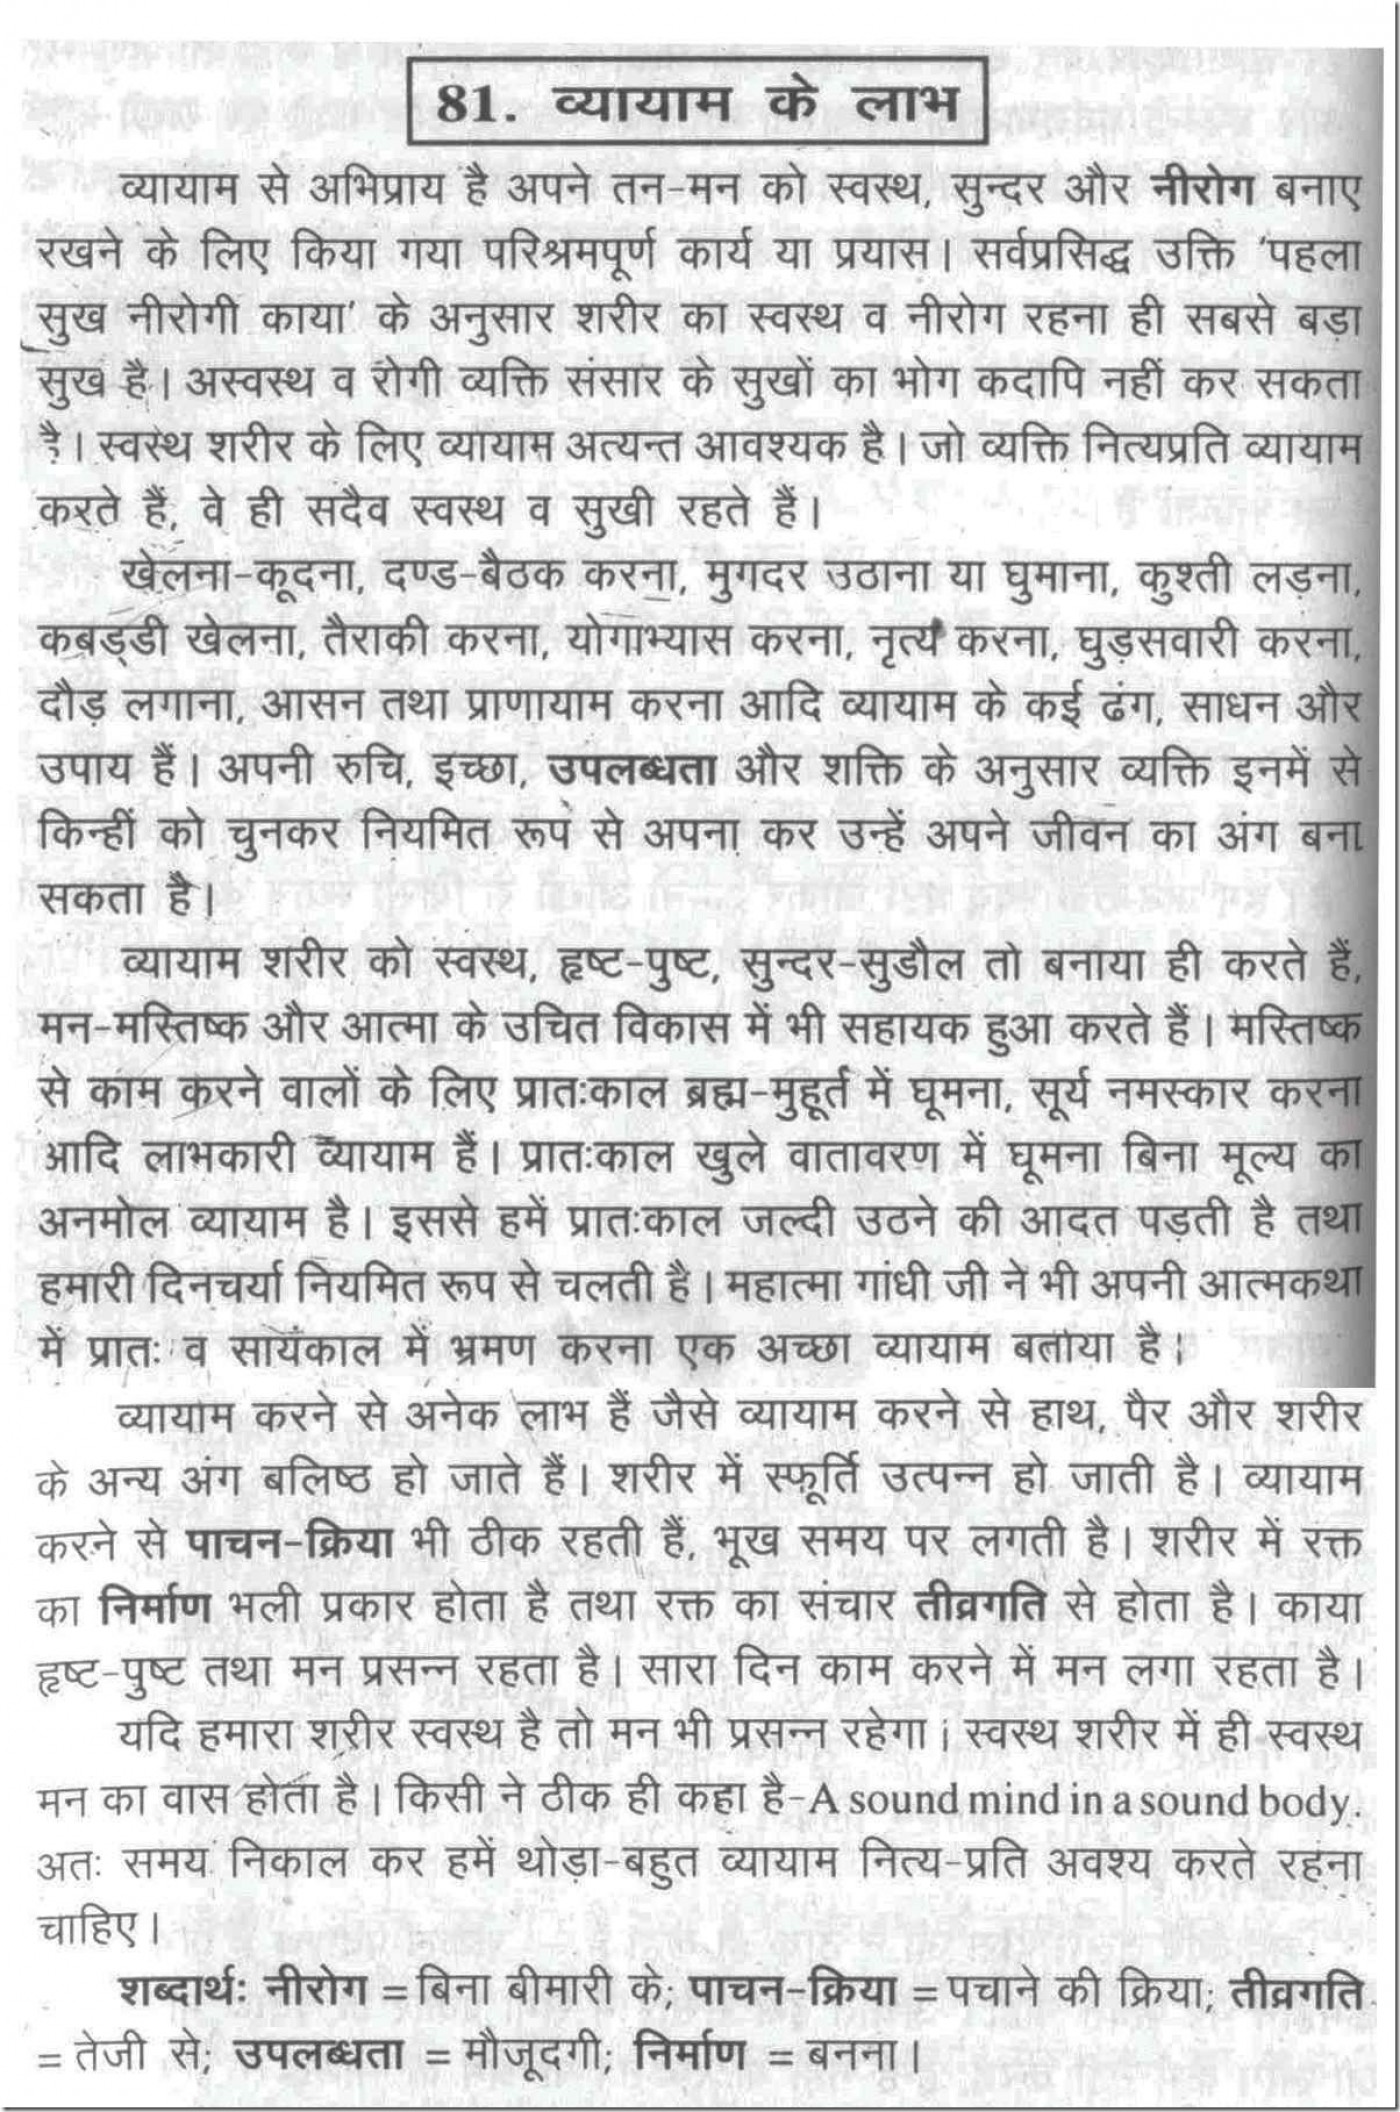 011 2563478896 Essay On Health And Fitness Through Food Good Habits In Hindi Exceptional Habit Wikipedia Eating 1400